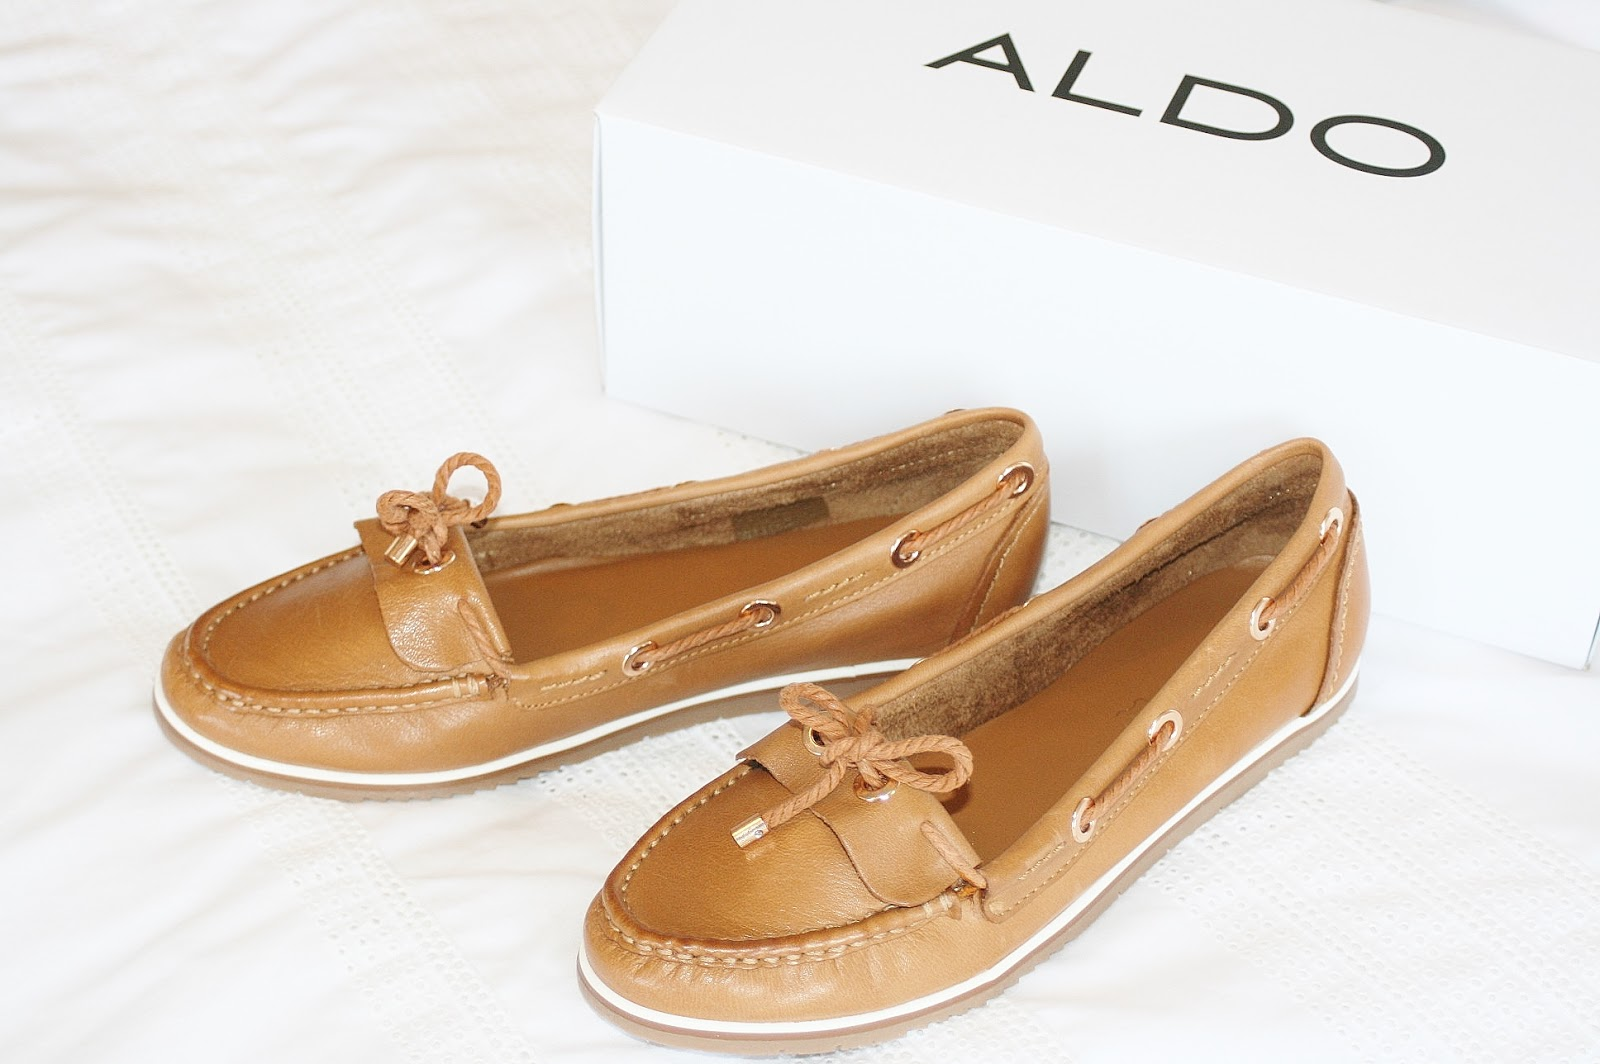 Katherine Penney Chic Fashion Style Summer Boat Shoes Loafers Life Shopping Aldo